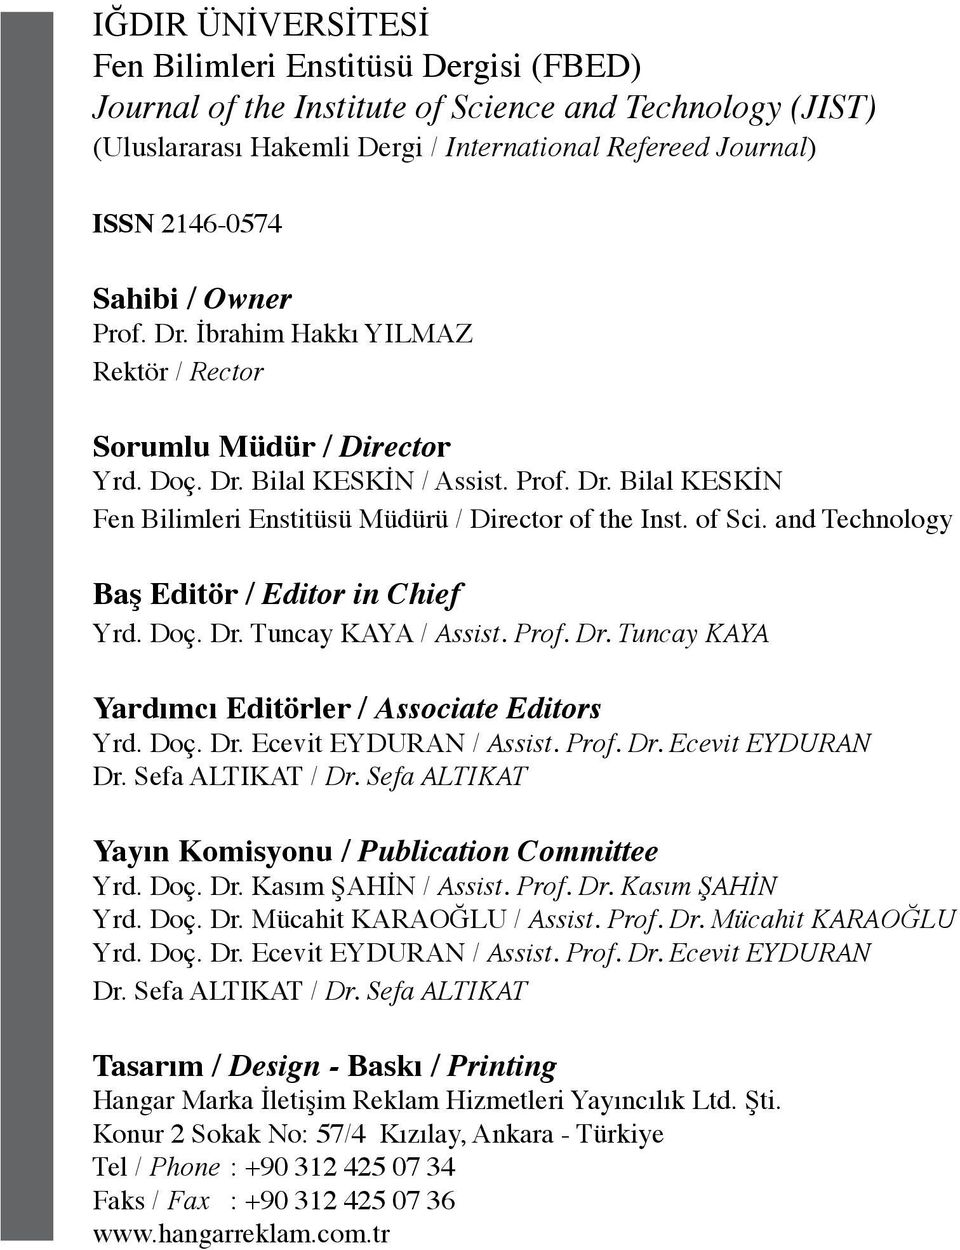 of Sci. and Technology Baş Editör / Editor in Chief Yrd. Doç. Dr. Tuncay KAYA / Assist. Prof. Dr. Tuncay KAYA Yardımcı Editörler / Associate Editors Yrd. Doç. Dr. Ecevit EYDURAN / Assist. Prof. Dr. Ecevit EYDURAN Dr.